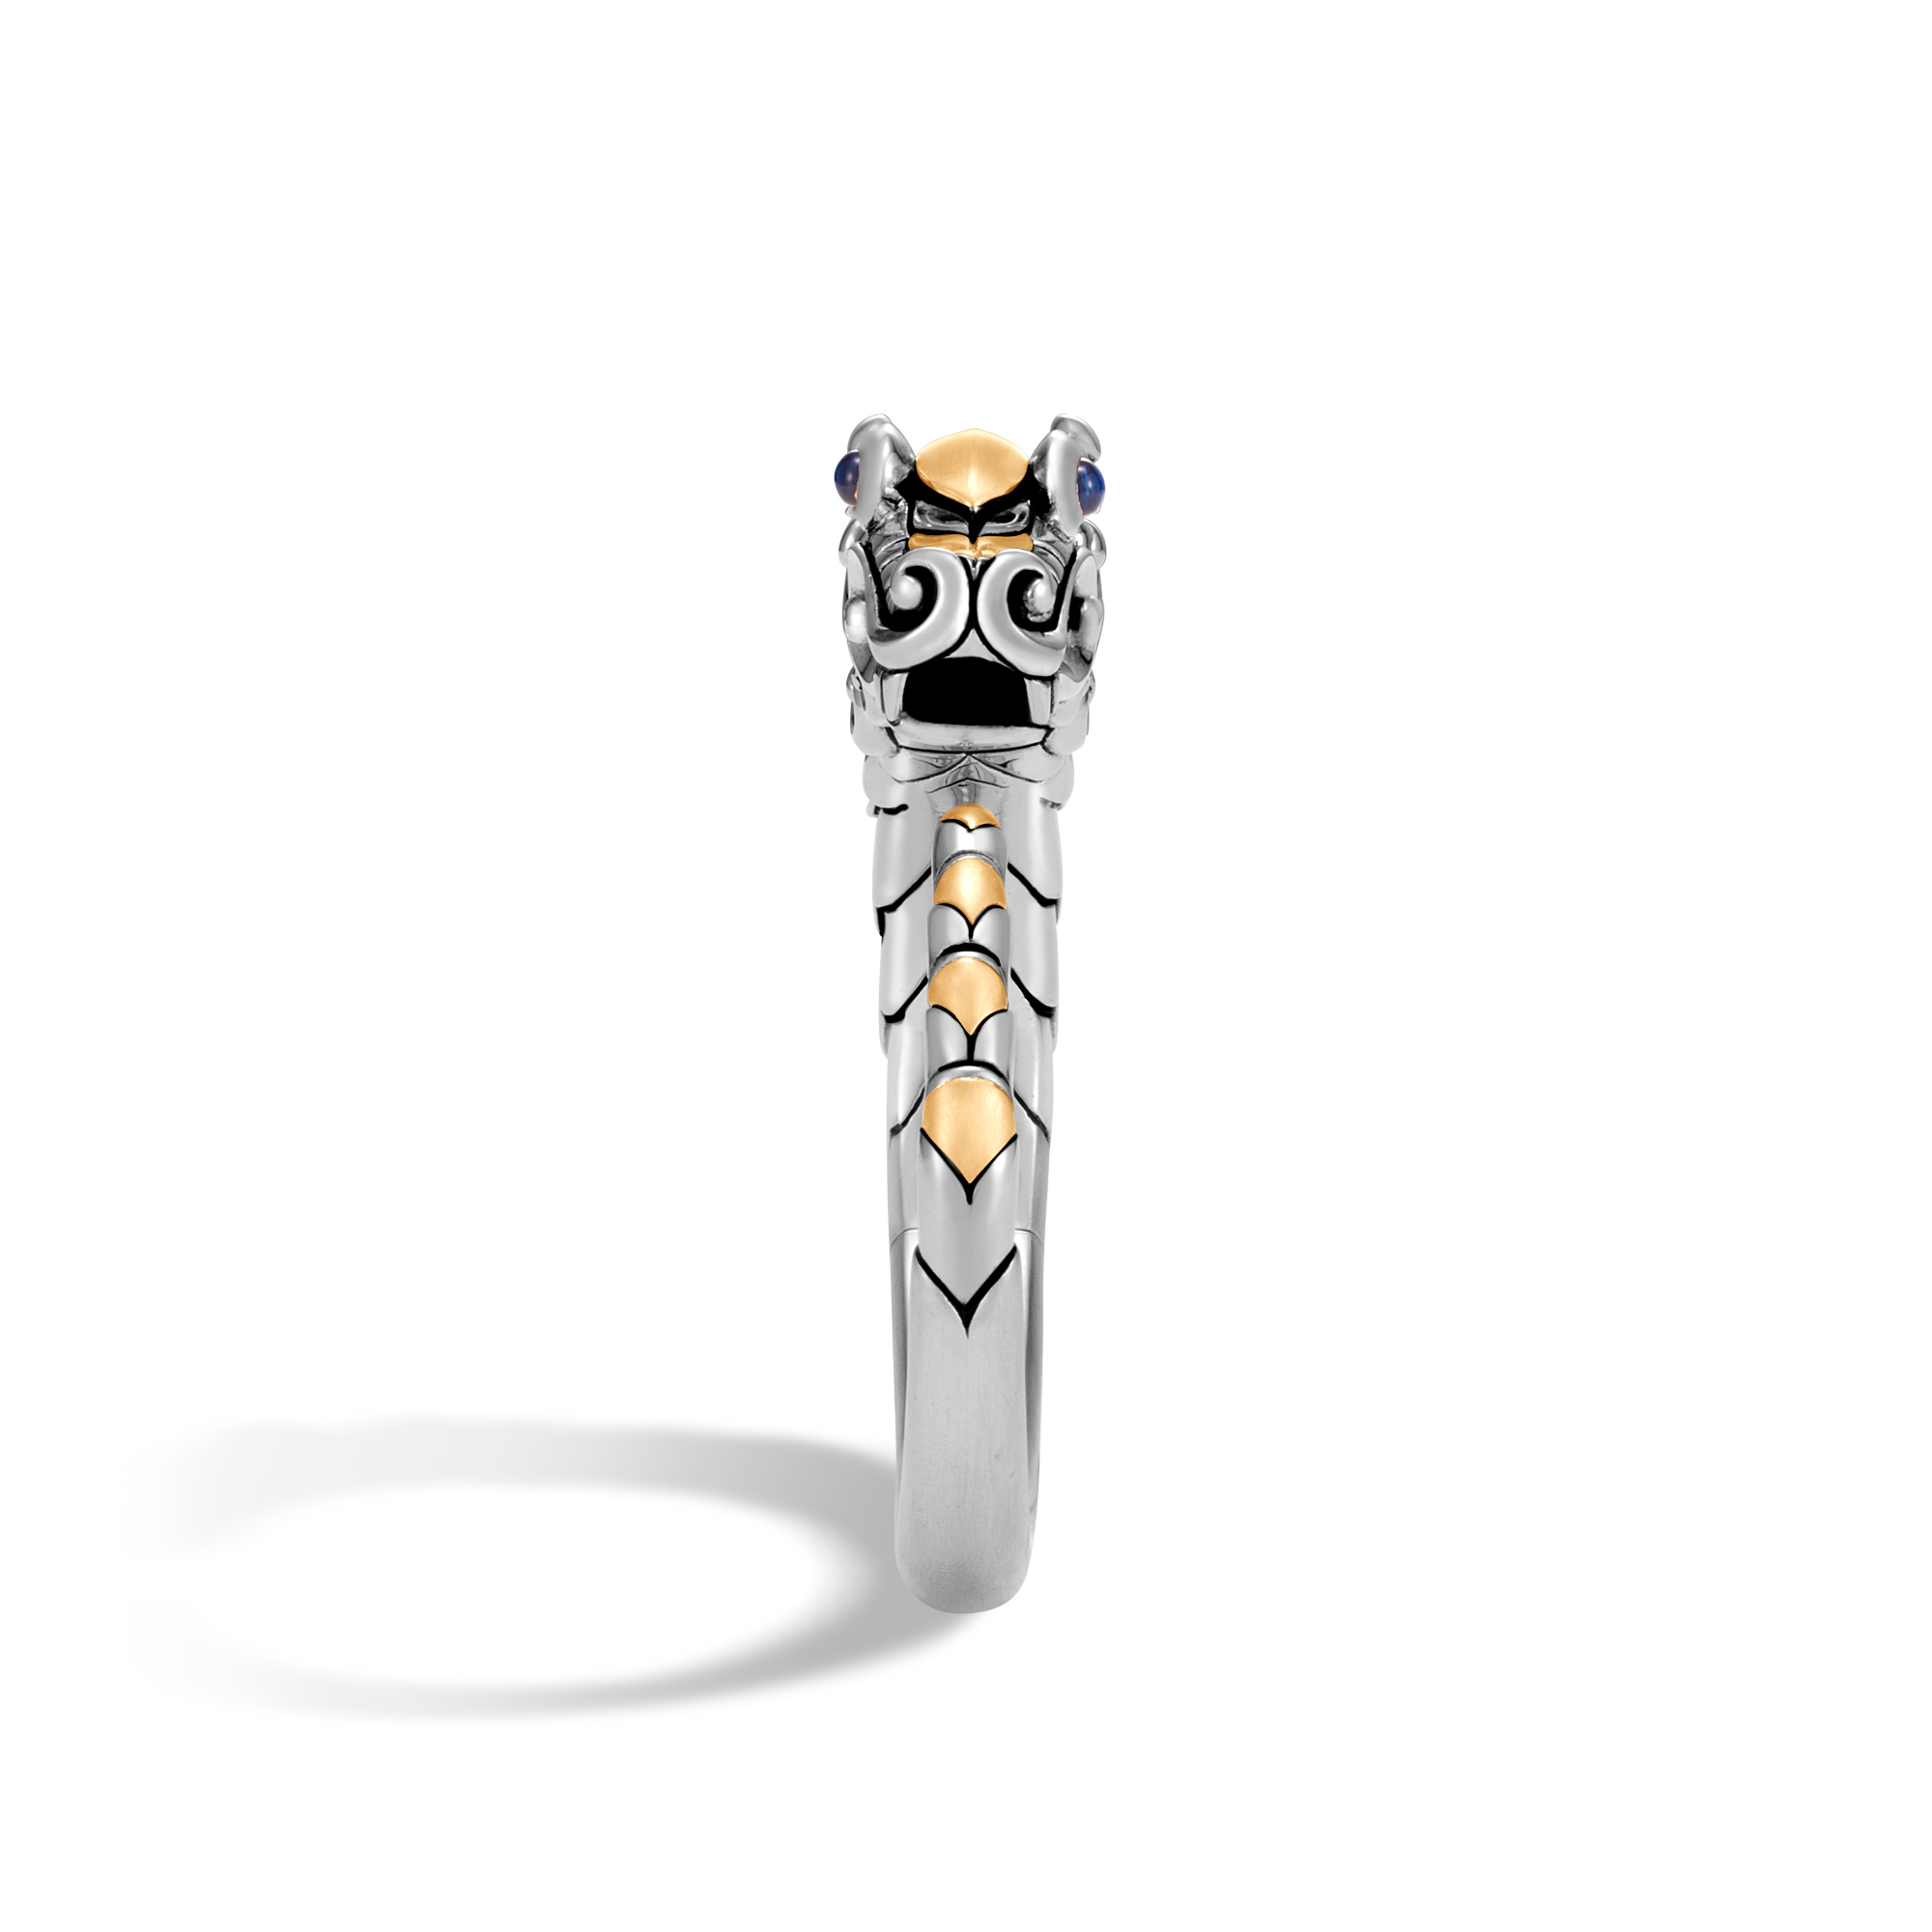 Legends Naga Kick Cuff in Brushed Silver and 18K Gold, Blue Sapphire, large